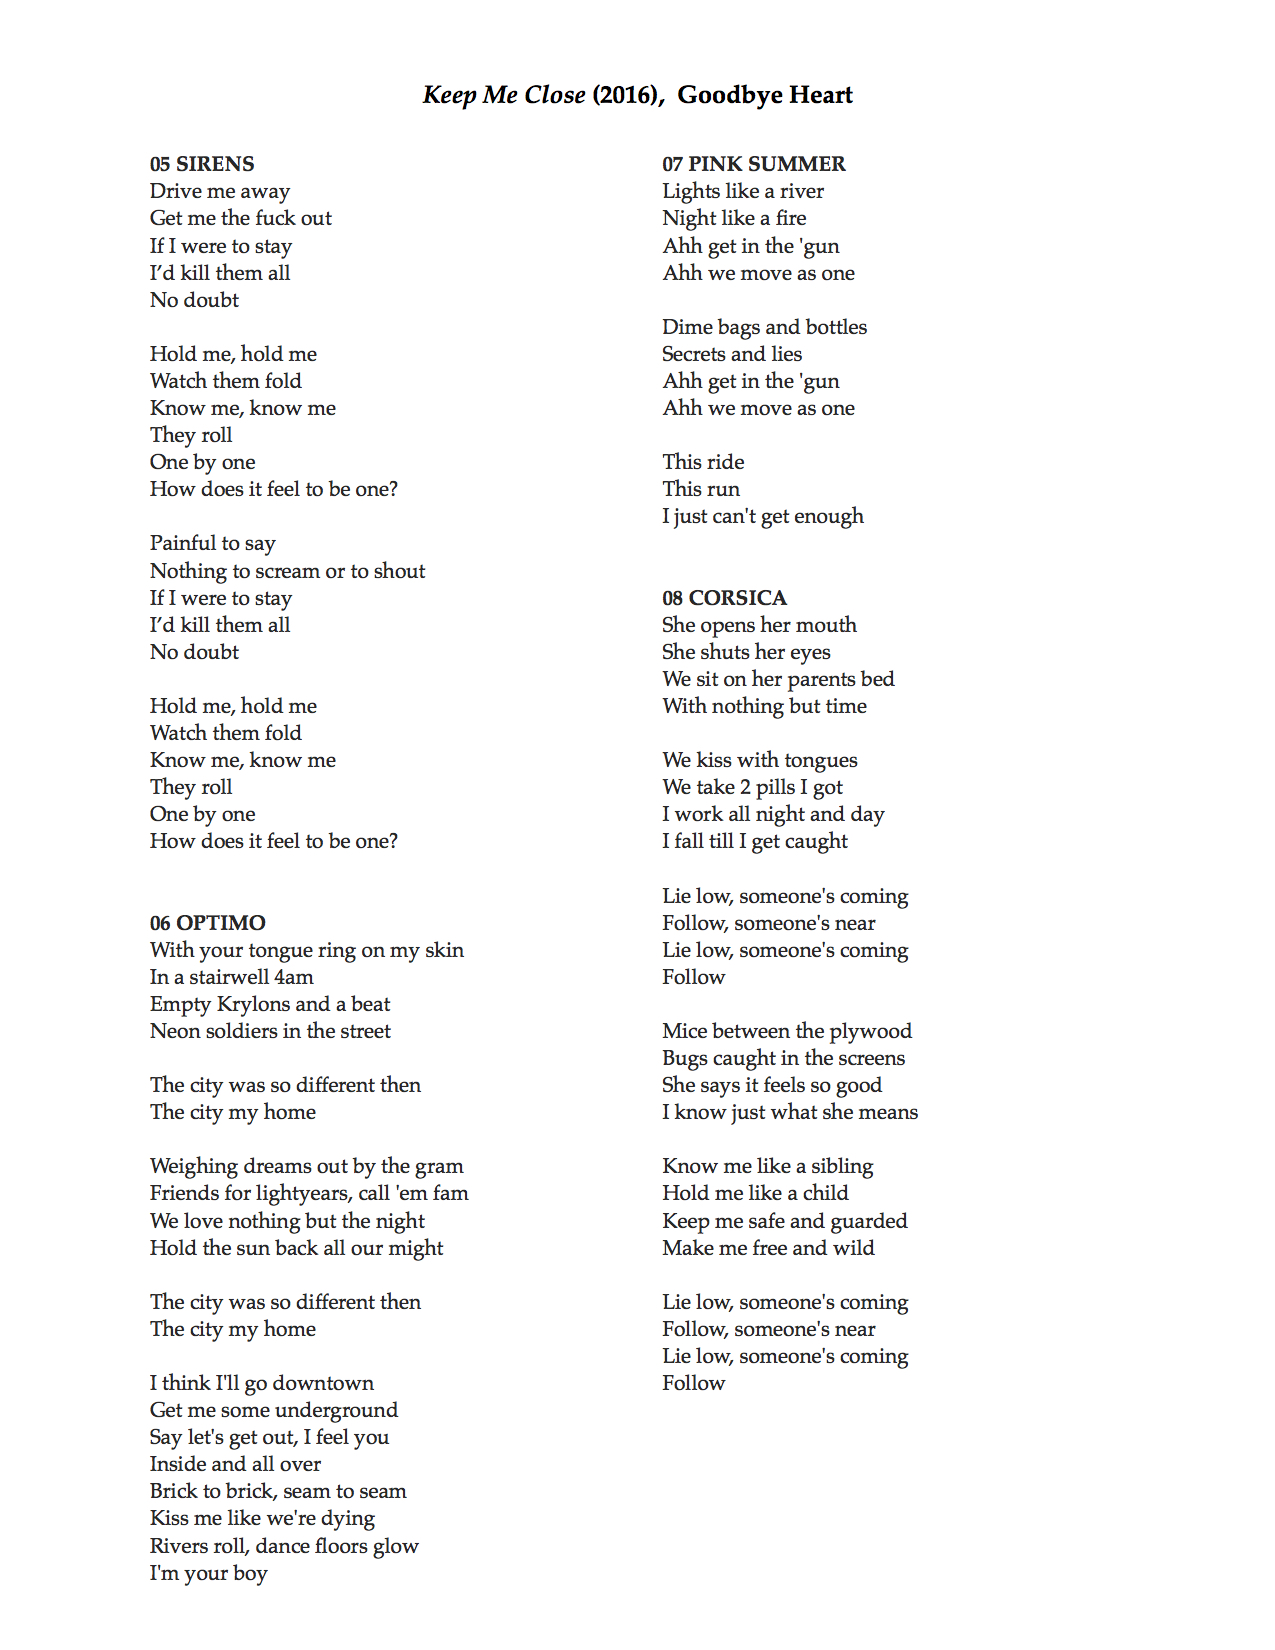 keep me close lyrics 5-8